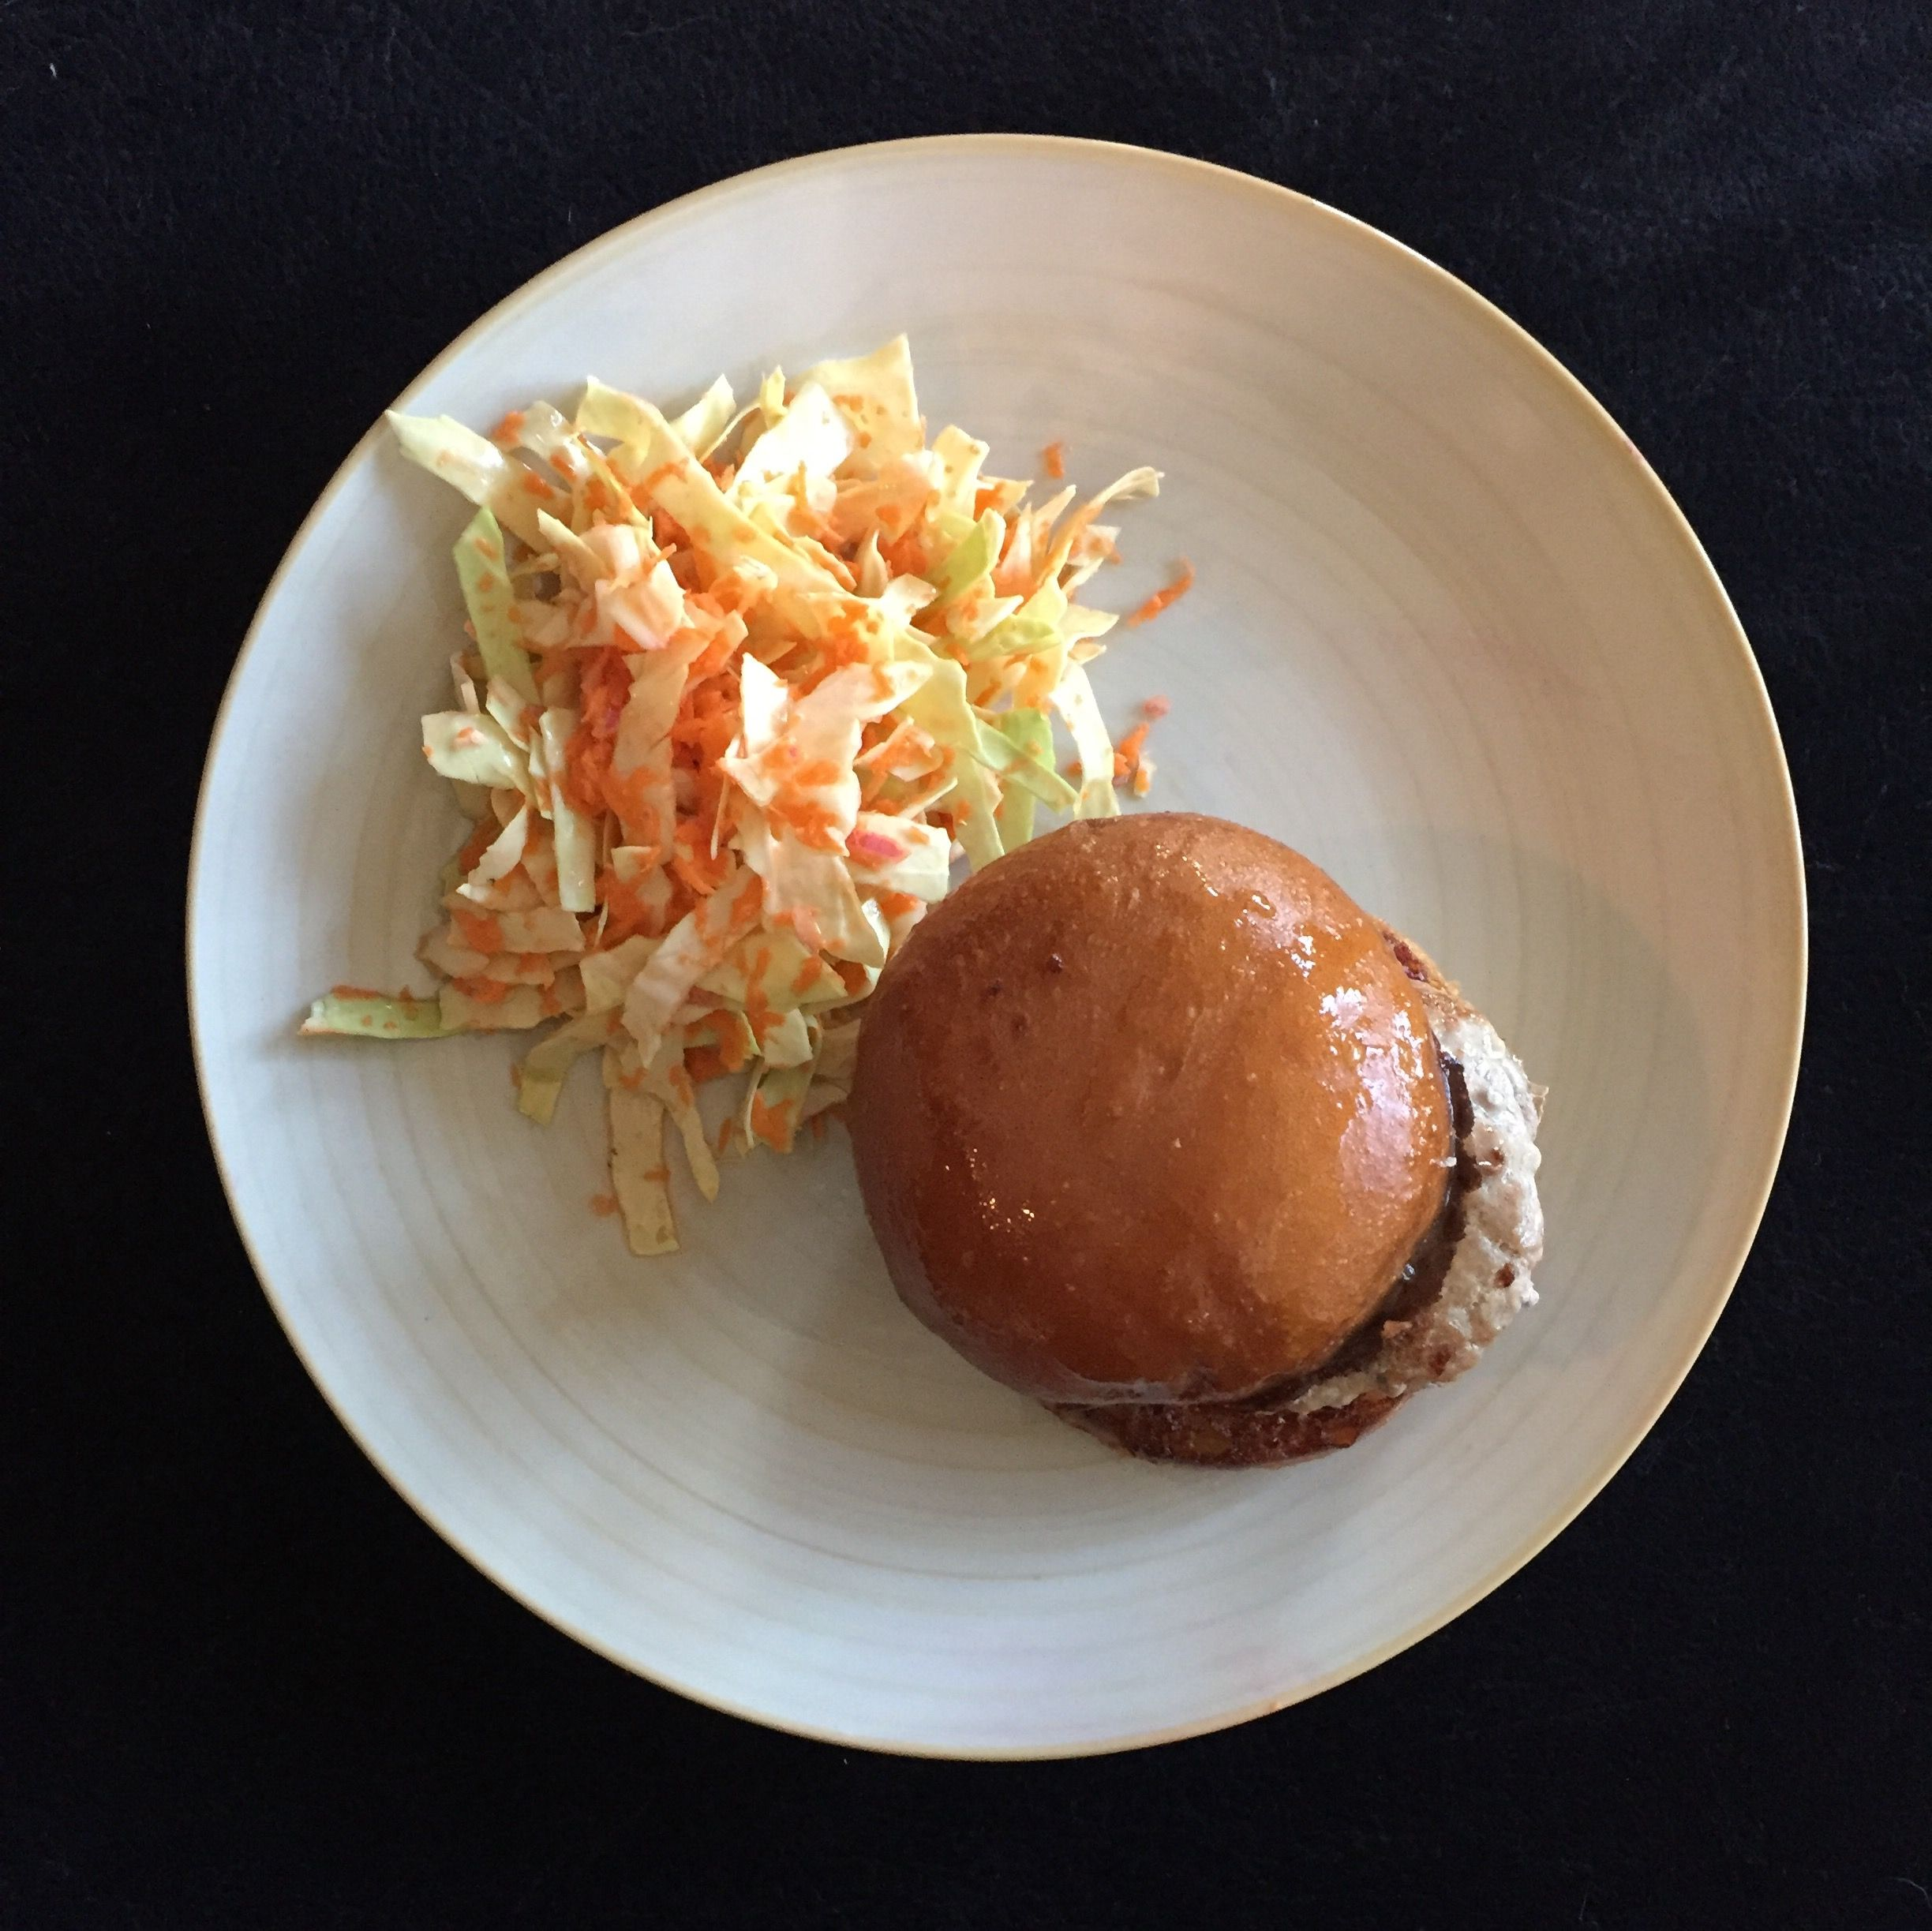 Blue apron pork burgers - Spiced Pork Burgers With Pickled Beets Cone Cabbage Slaw